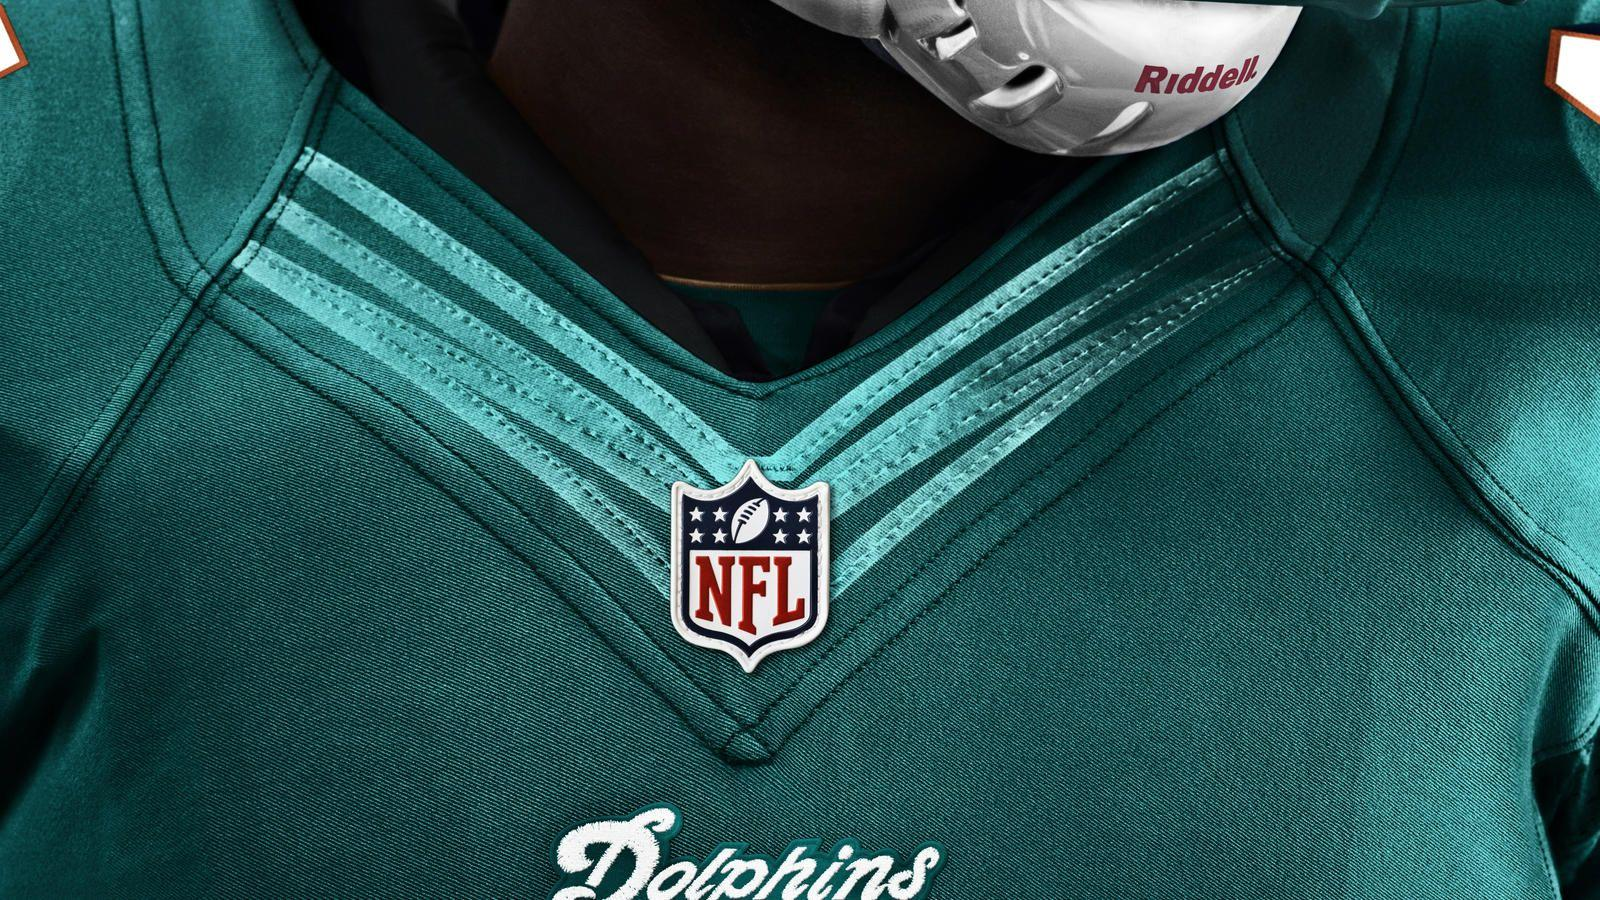 Miami Dolphins 2018 Wallpapers - Wallpaper Cave